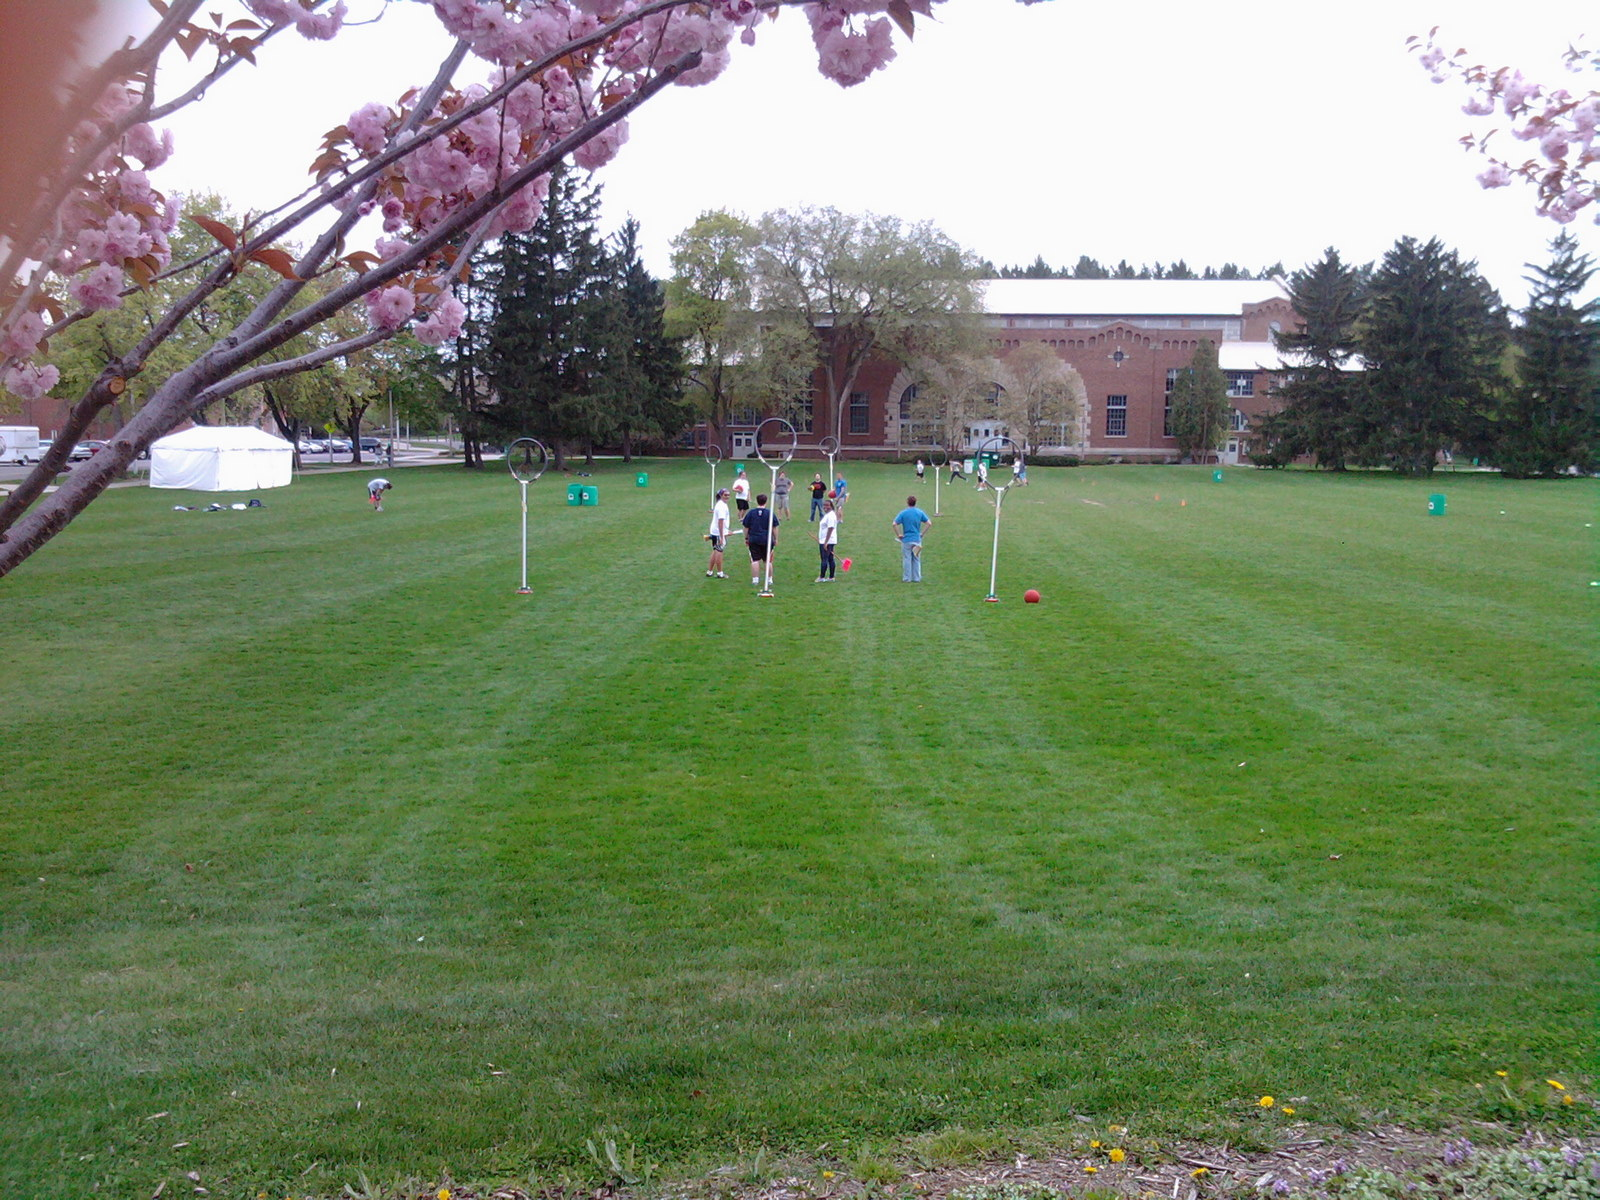 File:Real life quidditch (harry potter game) at MSU